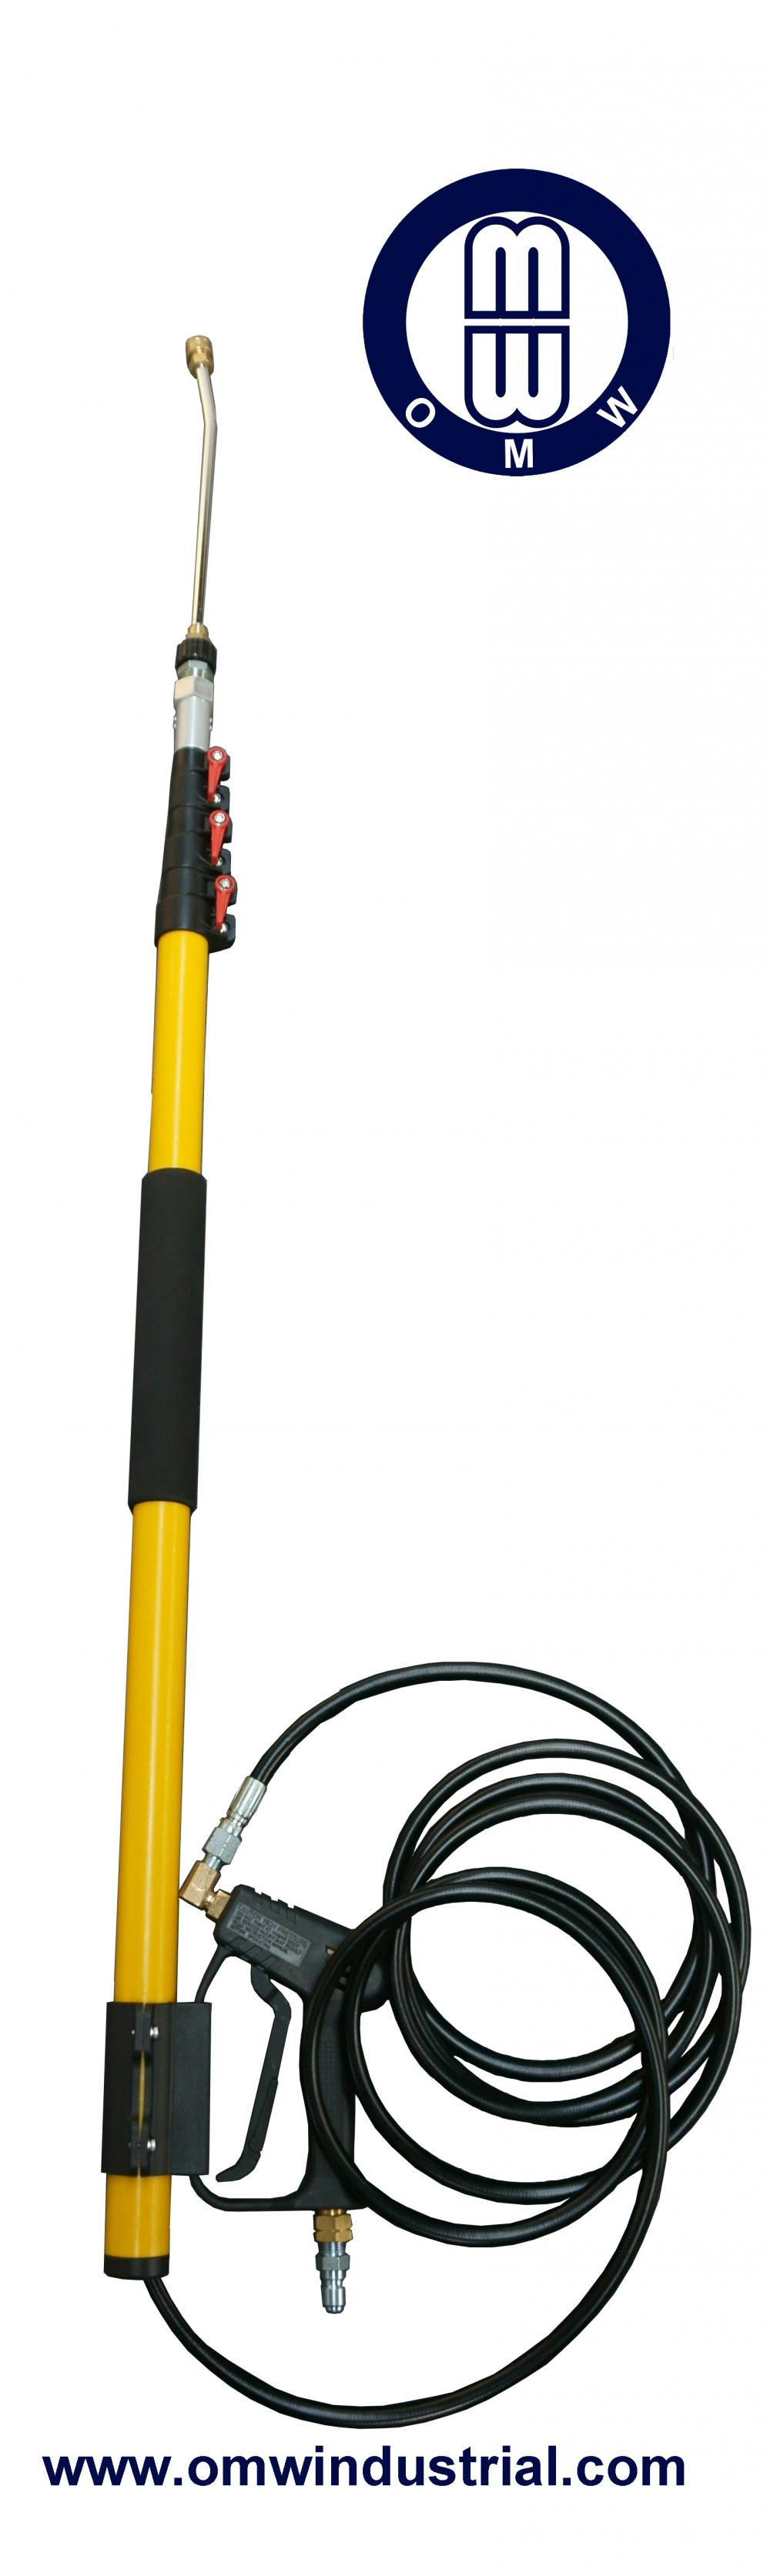 12 ft Hochdruckreiniger Telescoping Home Use